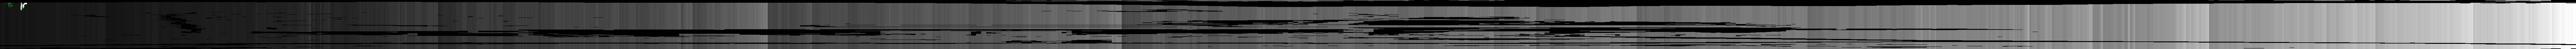 farm_author_queen_summer_(musical_score)--2004-906-6468-2702  (as mutated)  http://noemata.net/4749 April 04 2016 at 12:55PM